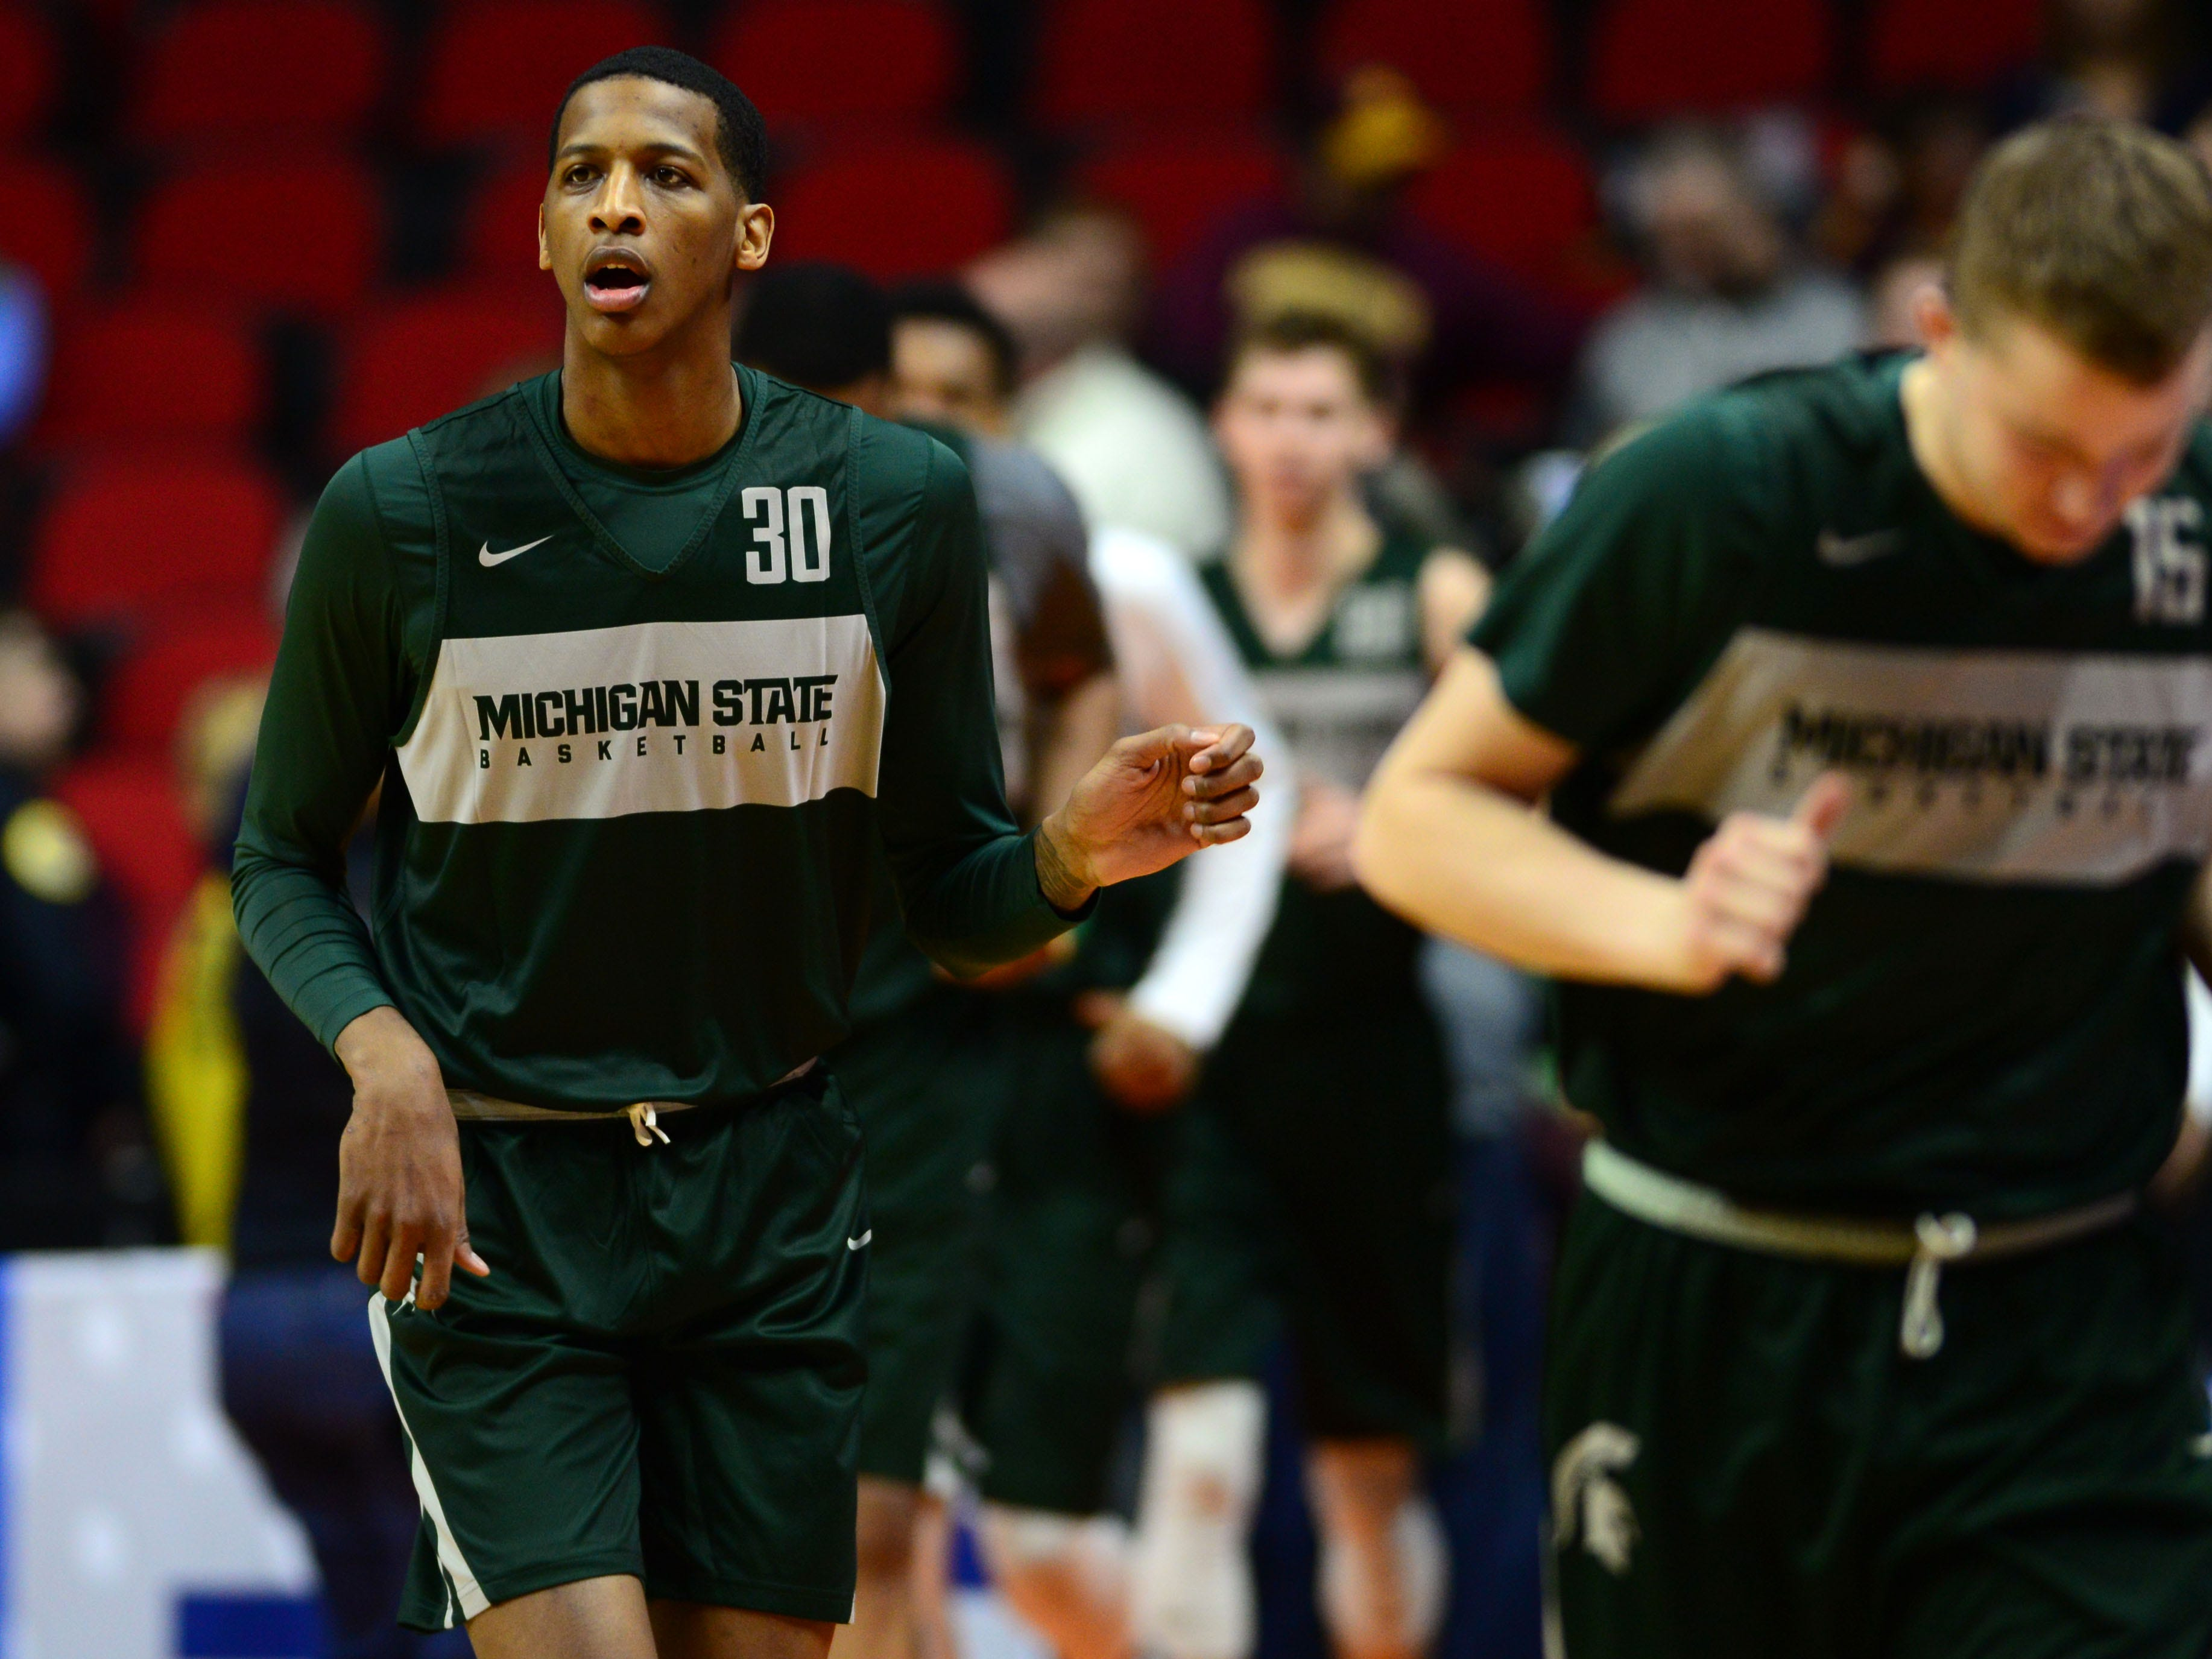 Mar 20, 2019; Des Moines, IA, USA; Michigan State Spartans forward Marcus Bingham Jr. (30) during practice before the first round of the 2019 NCAA Tournament at Wells Fargo Arena. Mandatory Credit: Jeffery Becker-USA TODAY Sports